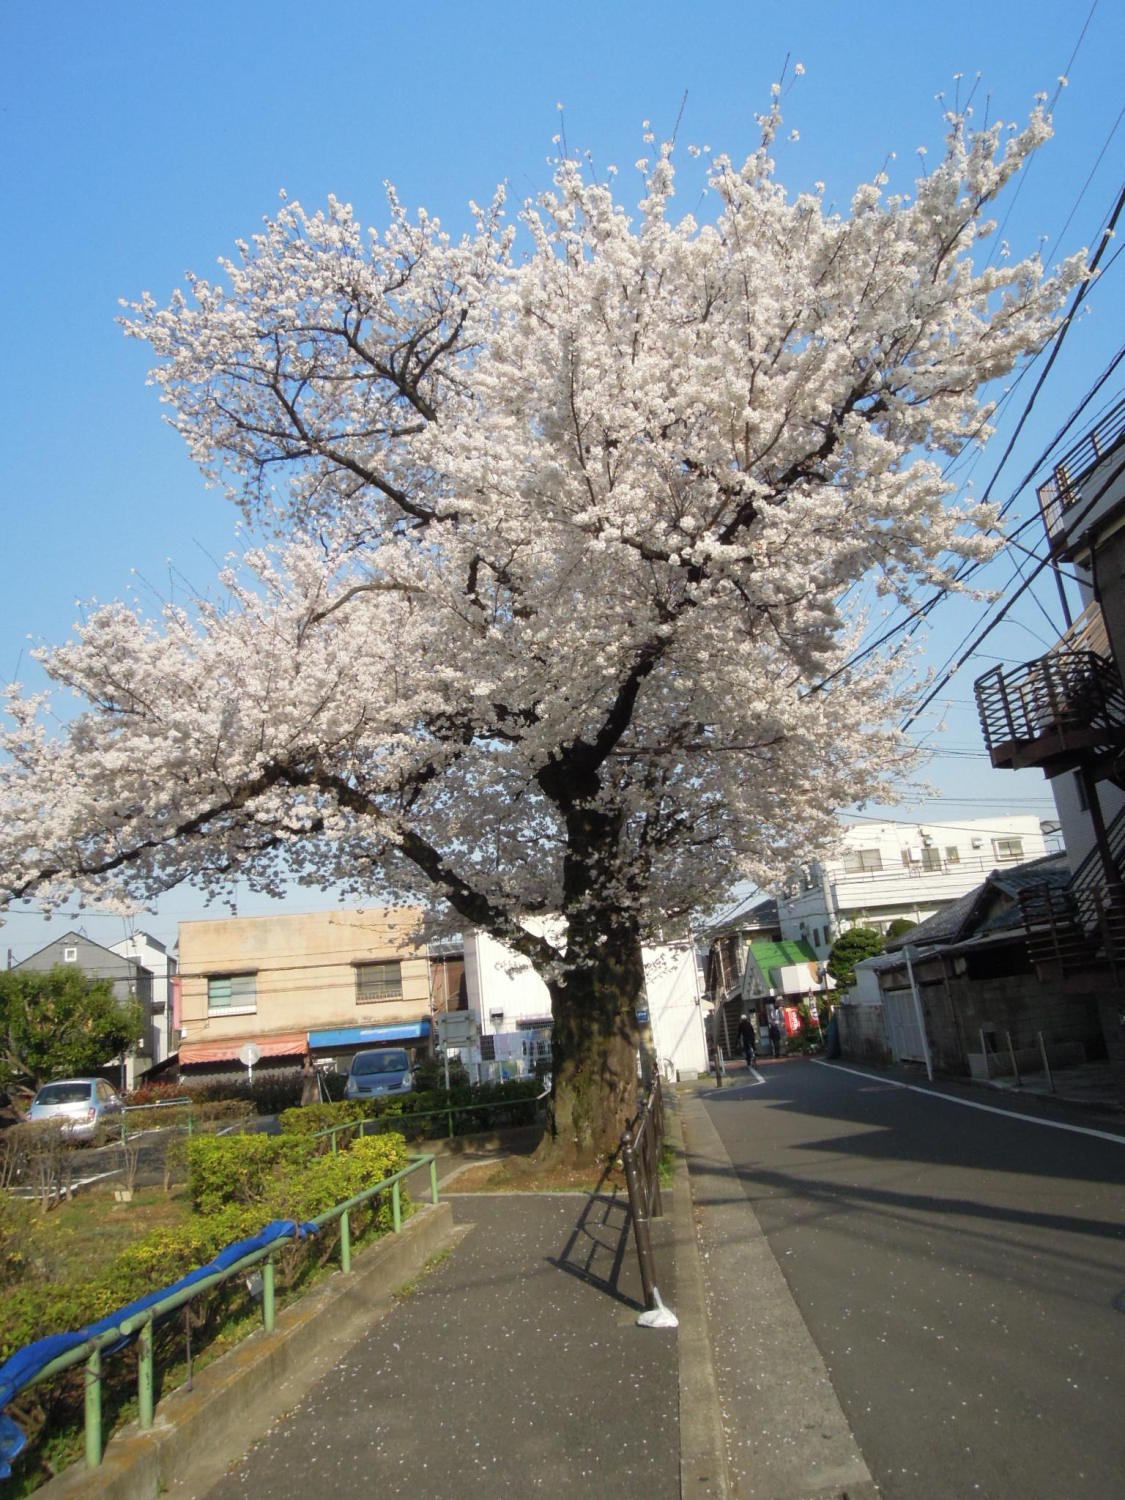 One of Oizumi cherry blossoms image